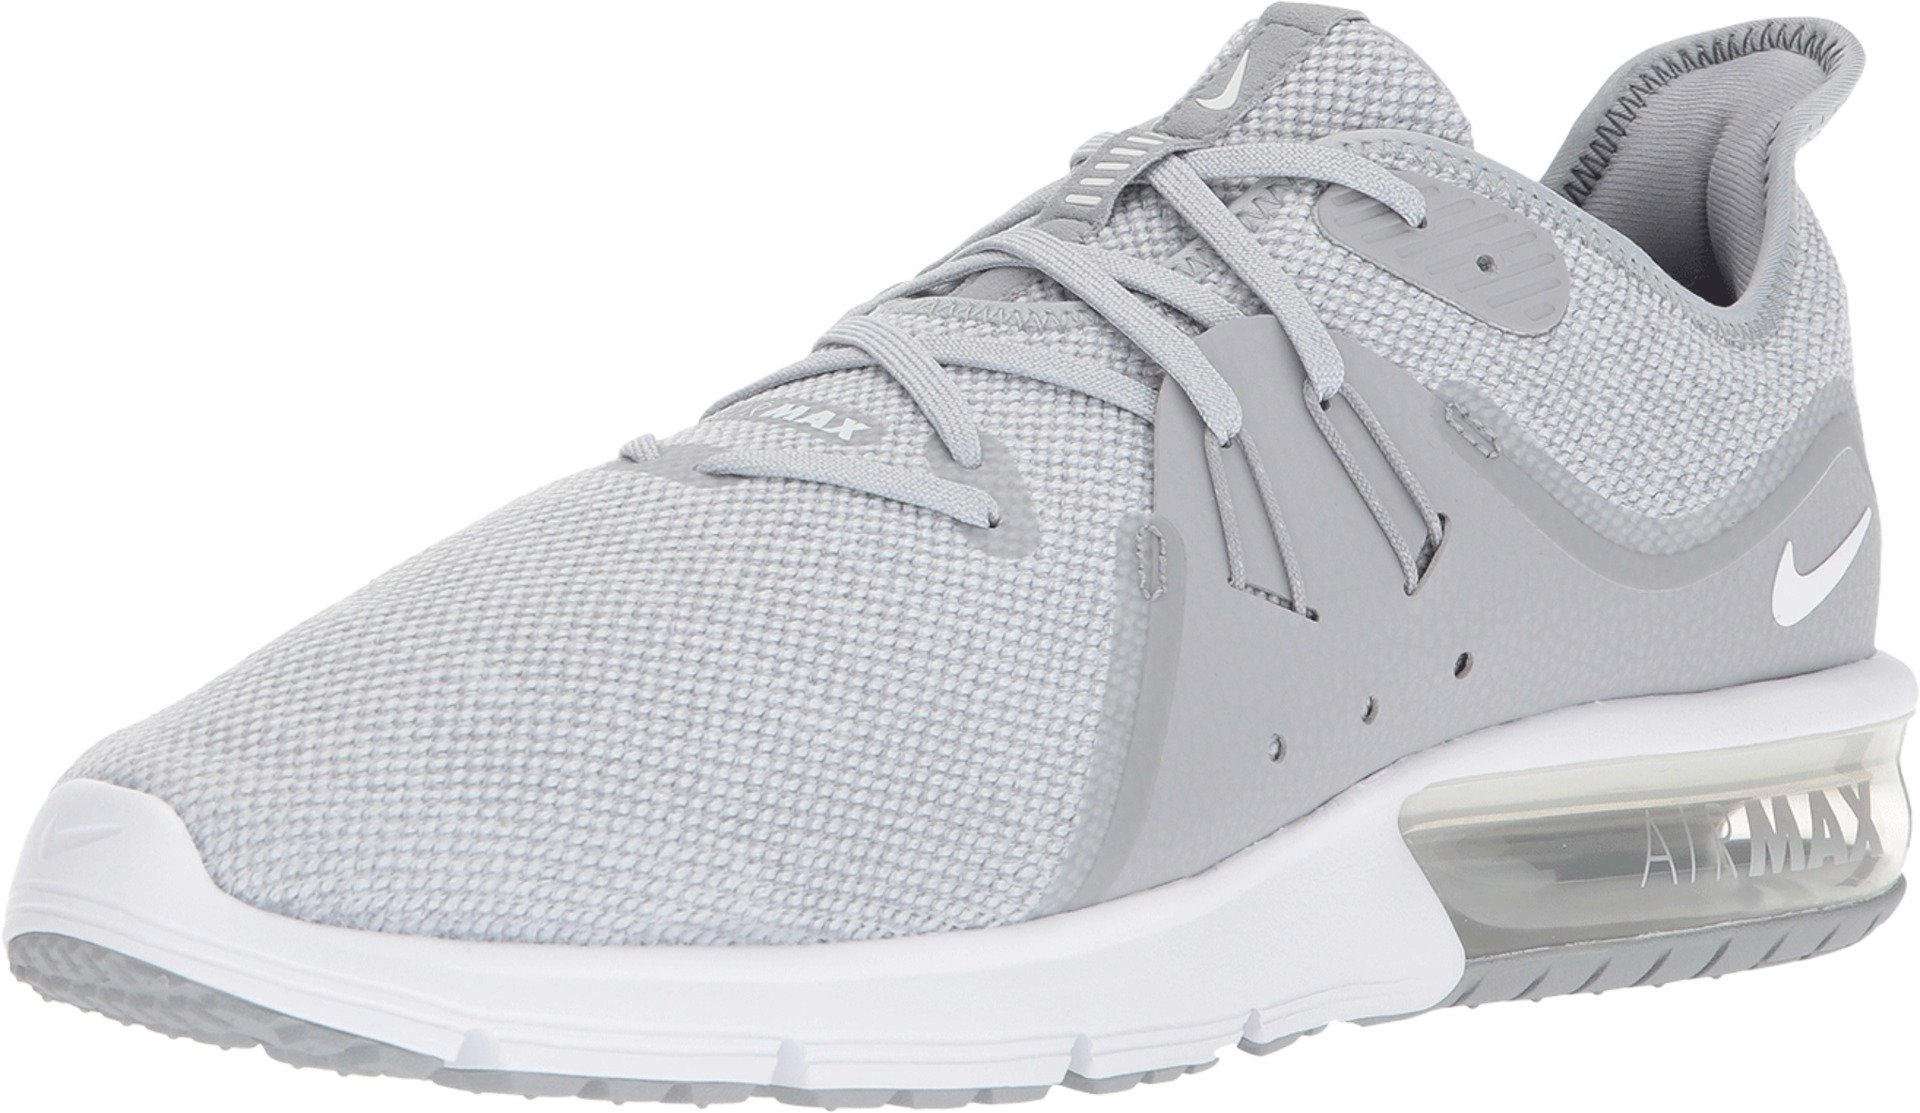 Nike Men's Air Max Sequent 3 Running Shoes Wolf Grey/White-Pure Platinum 7